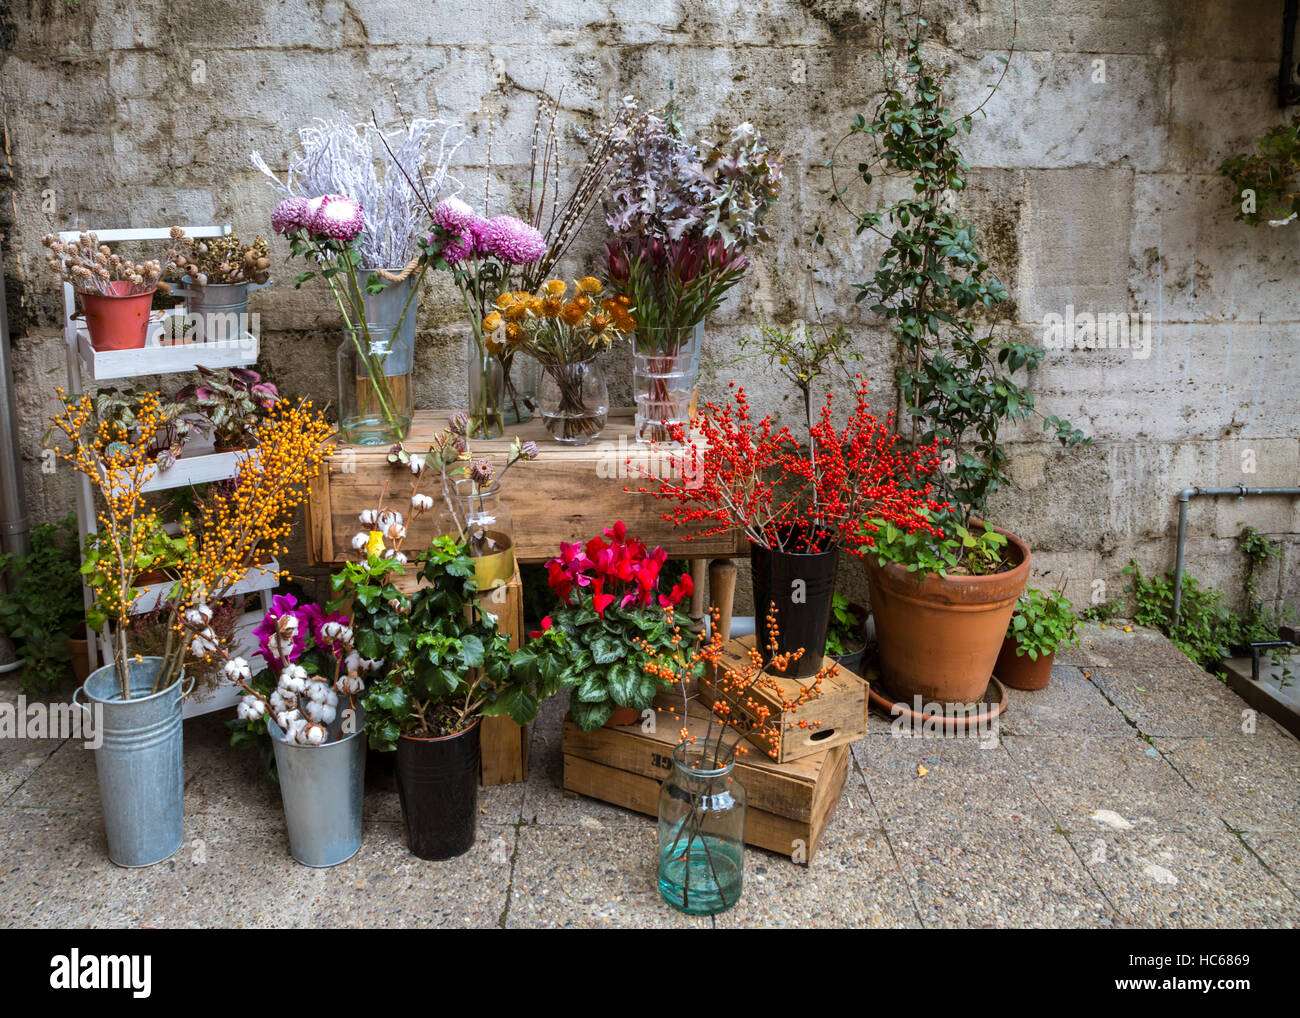 Beautiful flowers for sale with stone wall backdrop arrangement in beautiful flowers for sale with stone wall backdrop arrangement in bouquets in pots and buckets in a flower shop before christmas in istanbul turkey izmirmasajfo Gallery